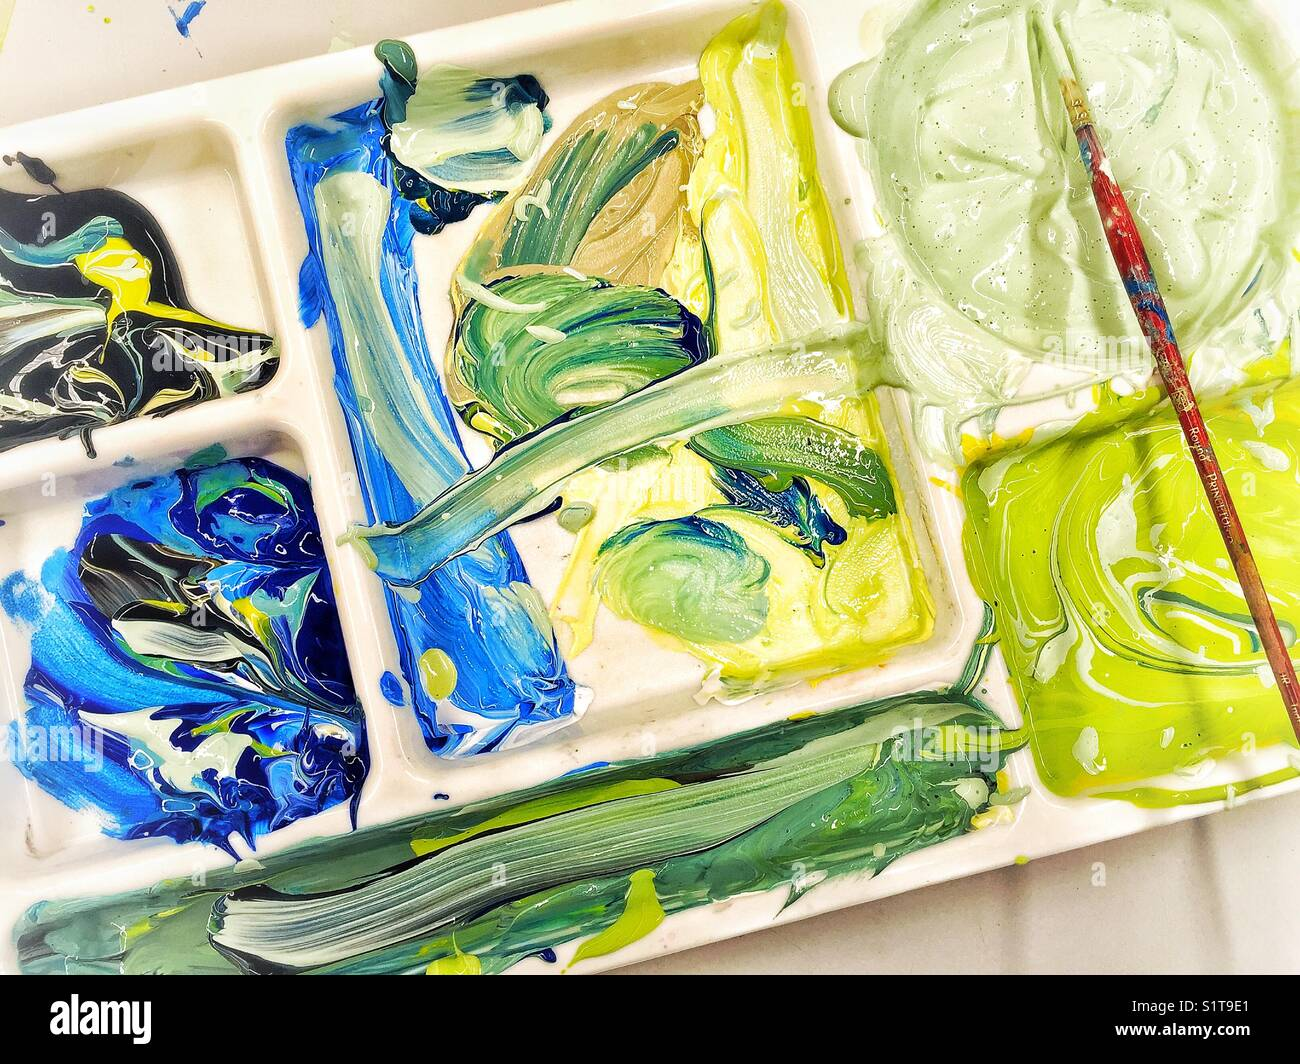 Large tray used as a palette for mixing tempera paints - Stock Image